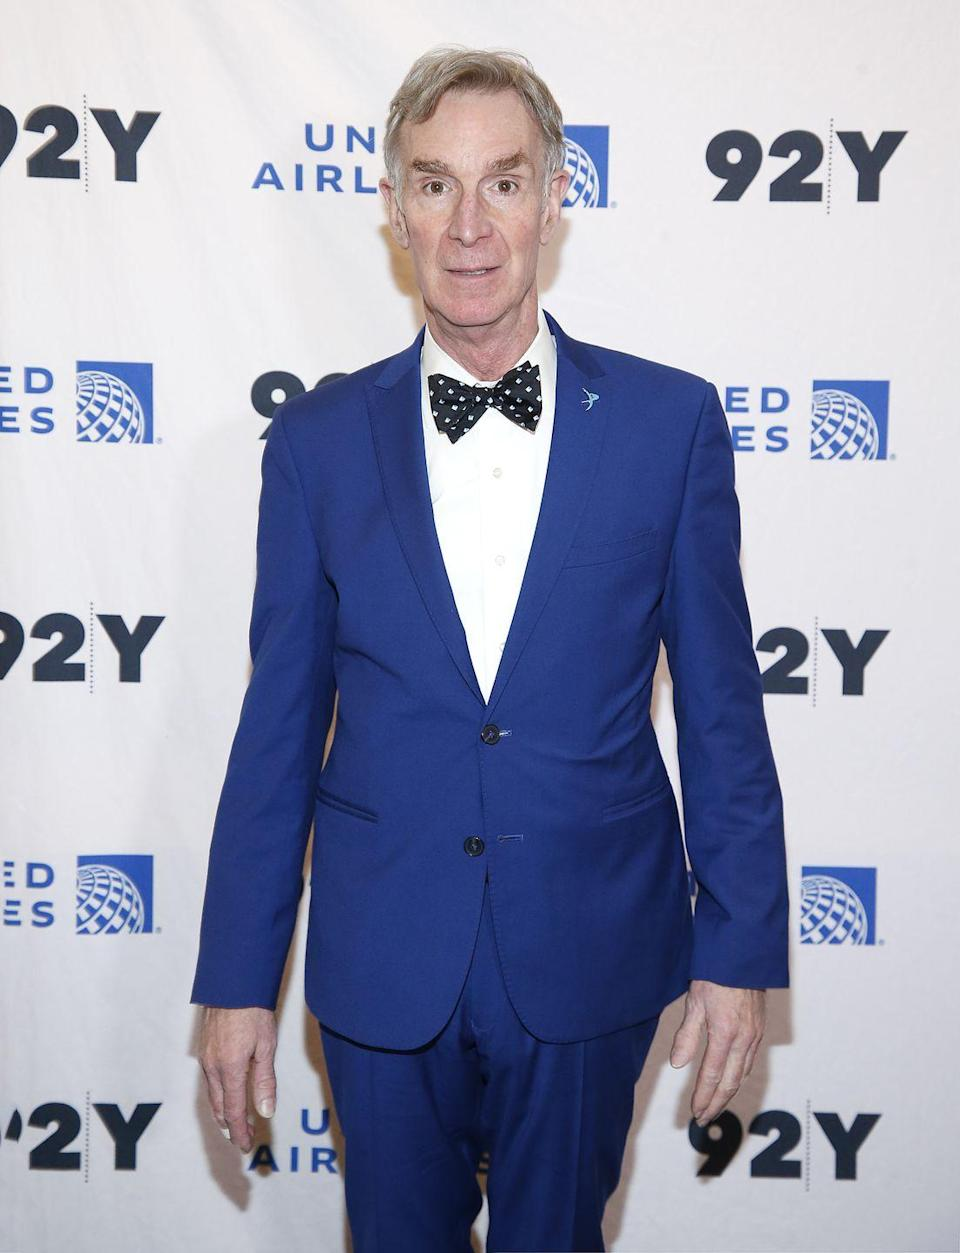 <p>In 1977, Nye graduated from Cornell University with a Bachelor's degree in Mechanical Engineering. </p>